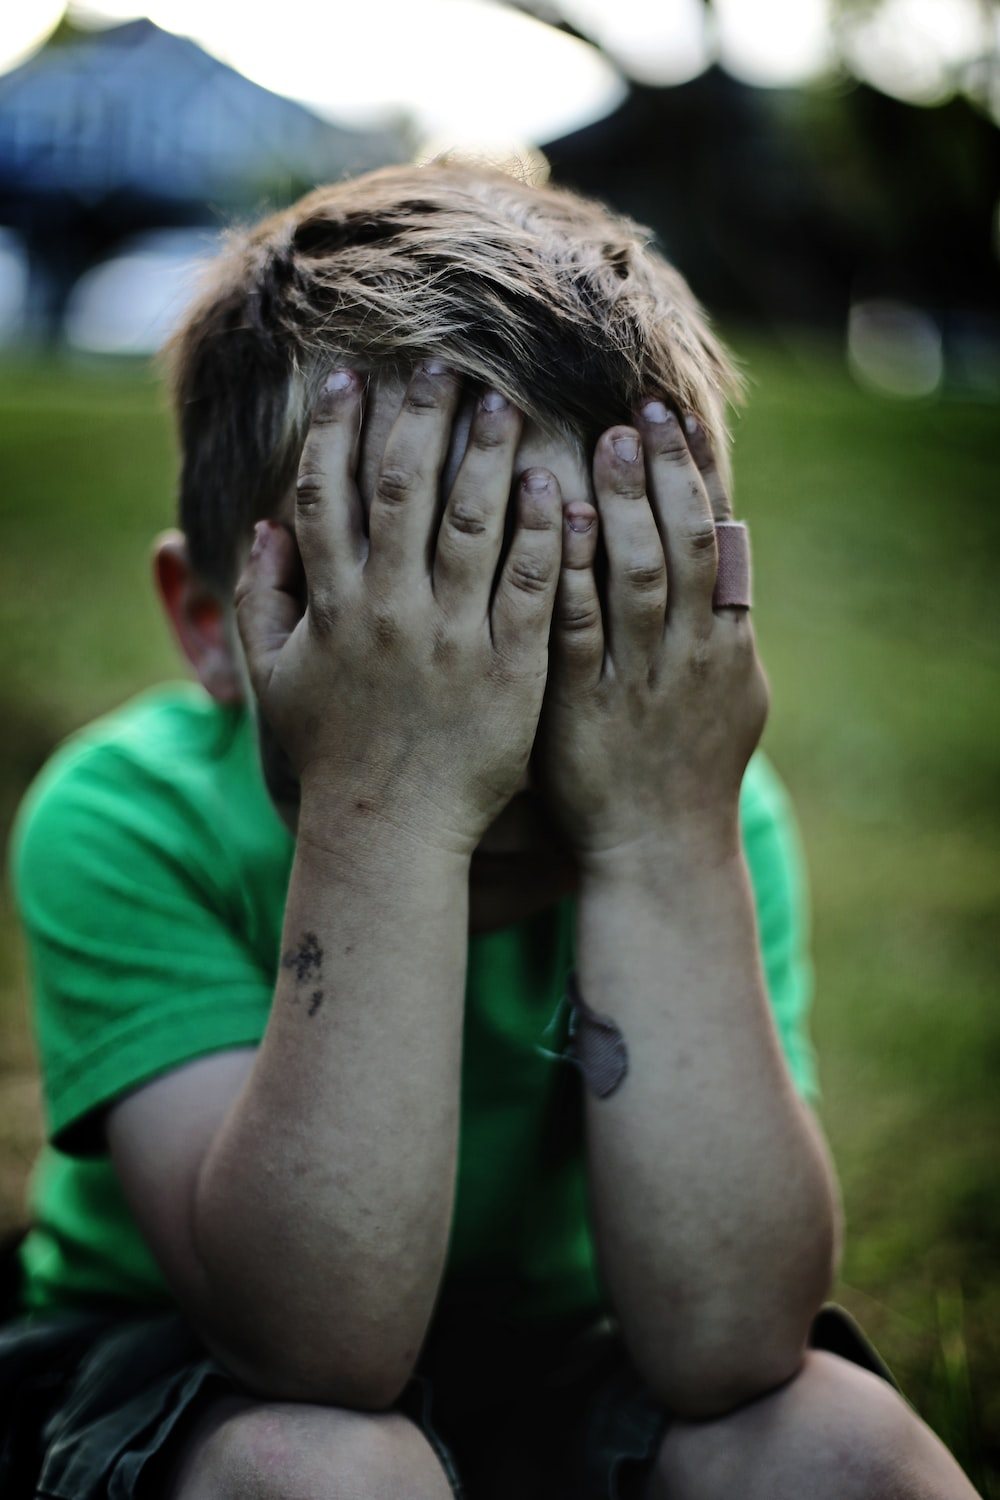 boy sitting while covering his face